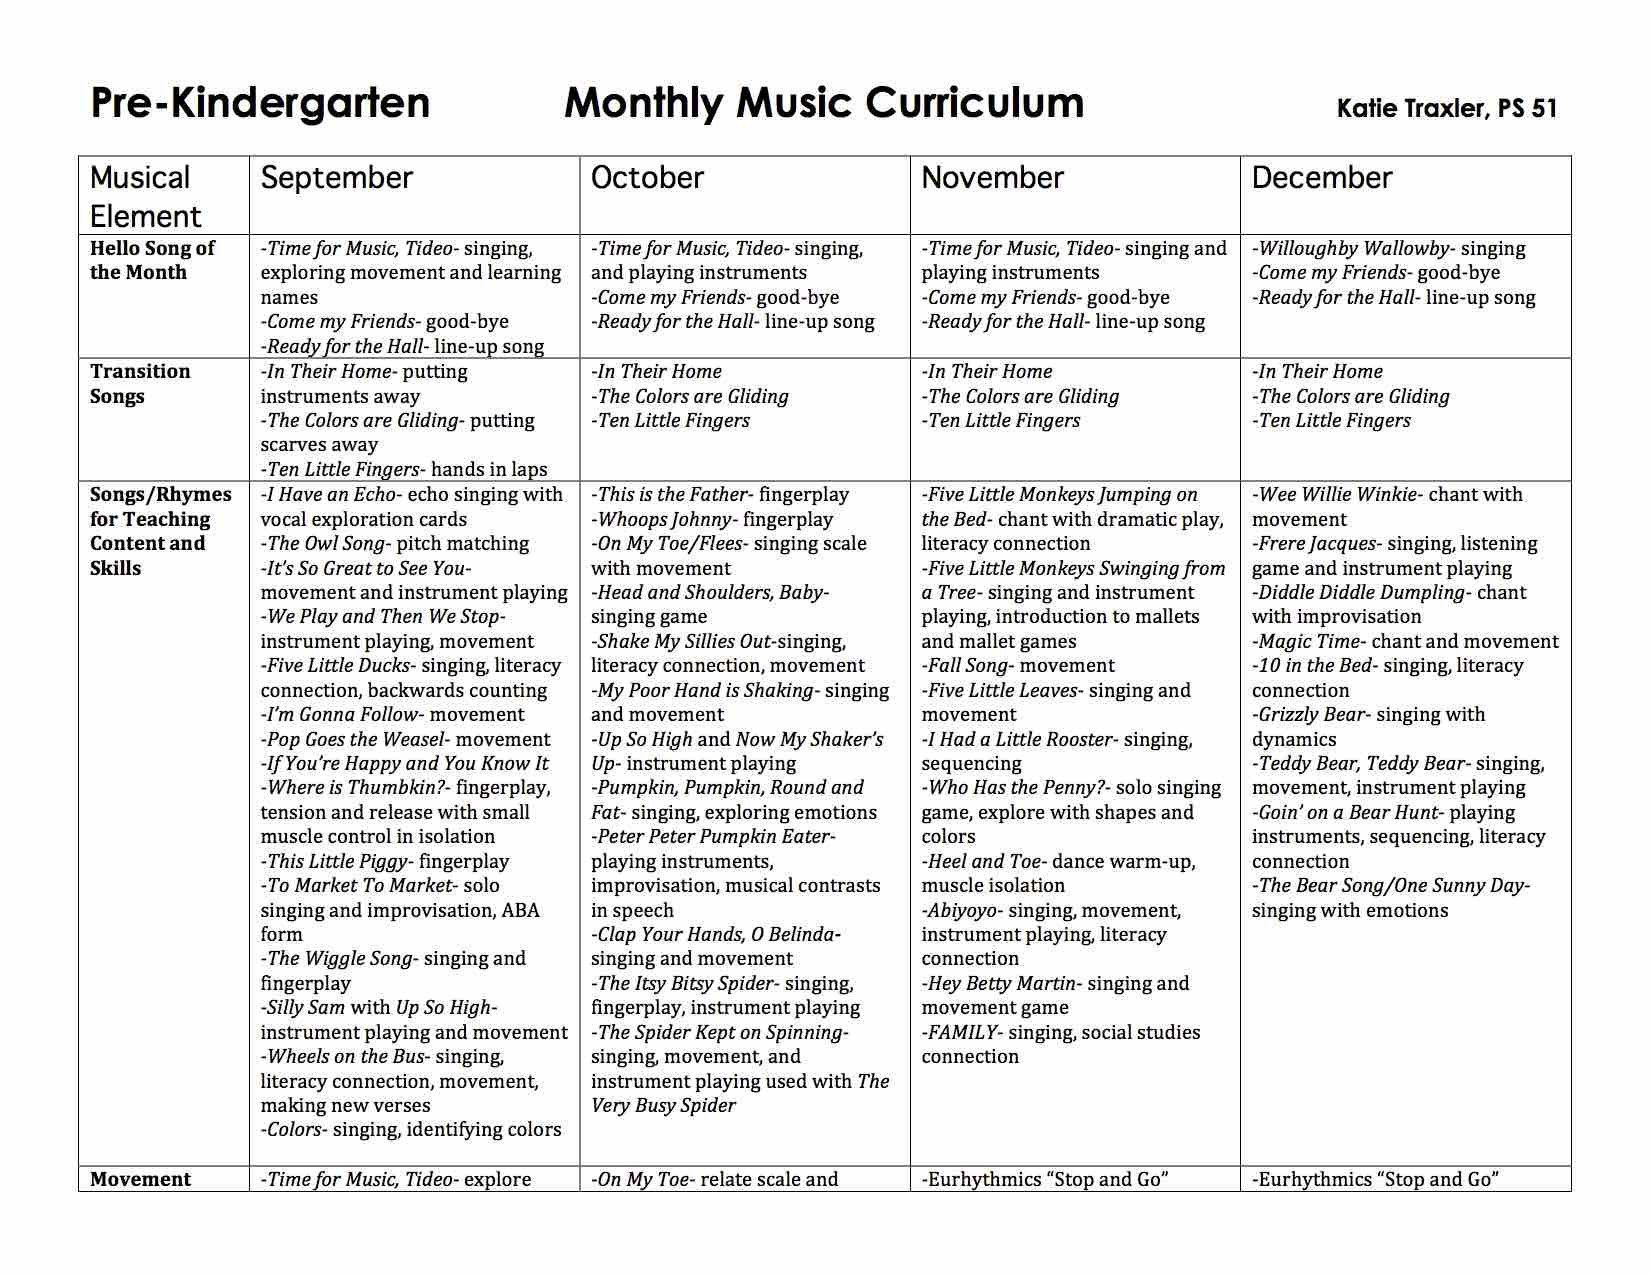 Music curriculum map template gallery template design ideas for Kindergarten curriculum map template